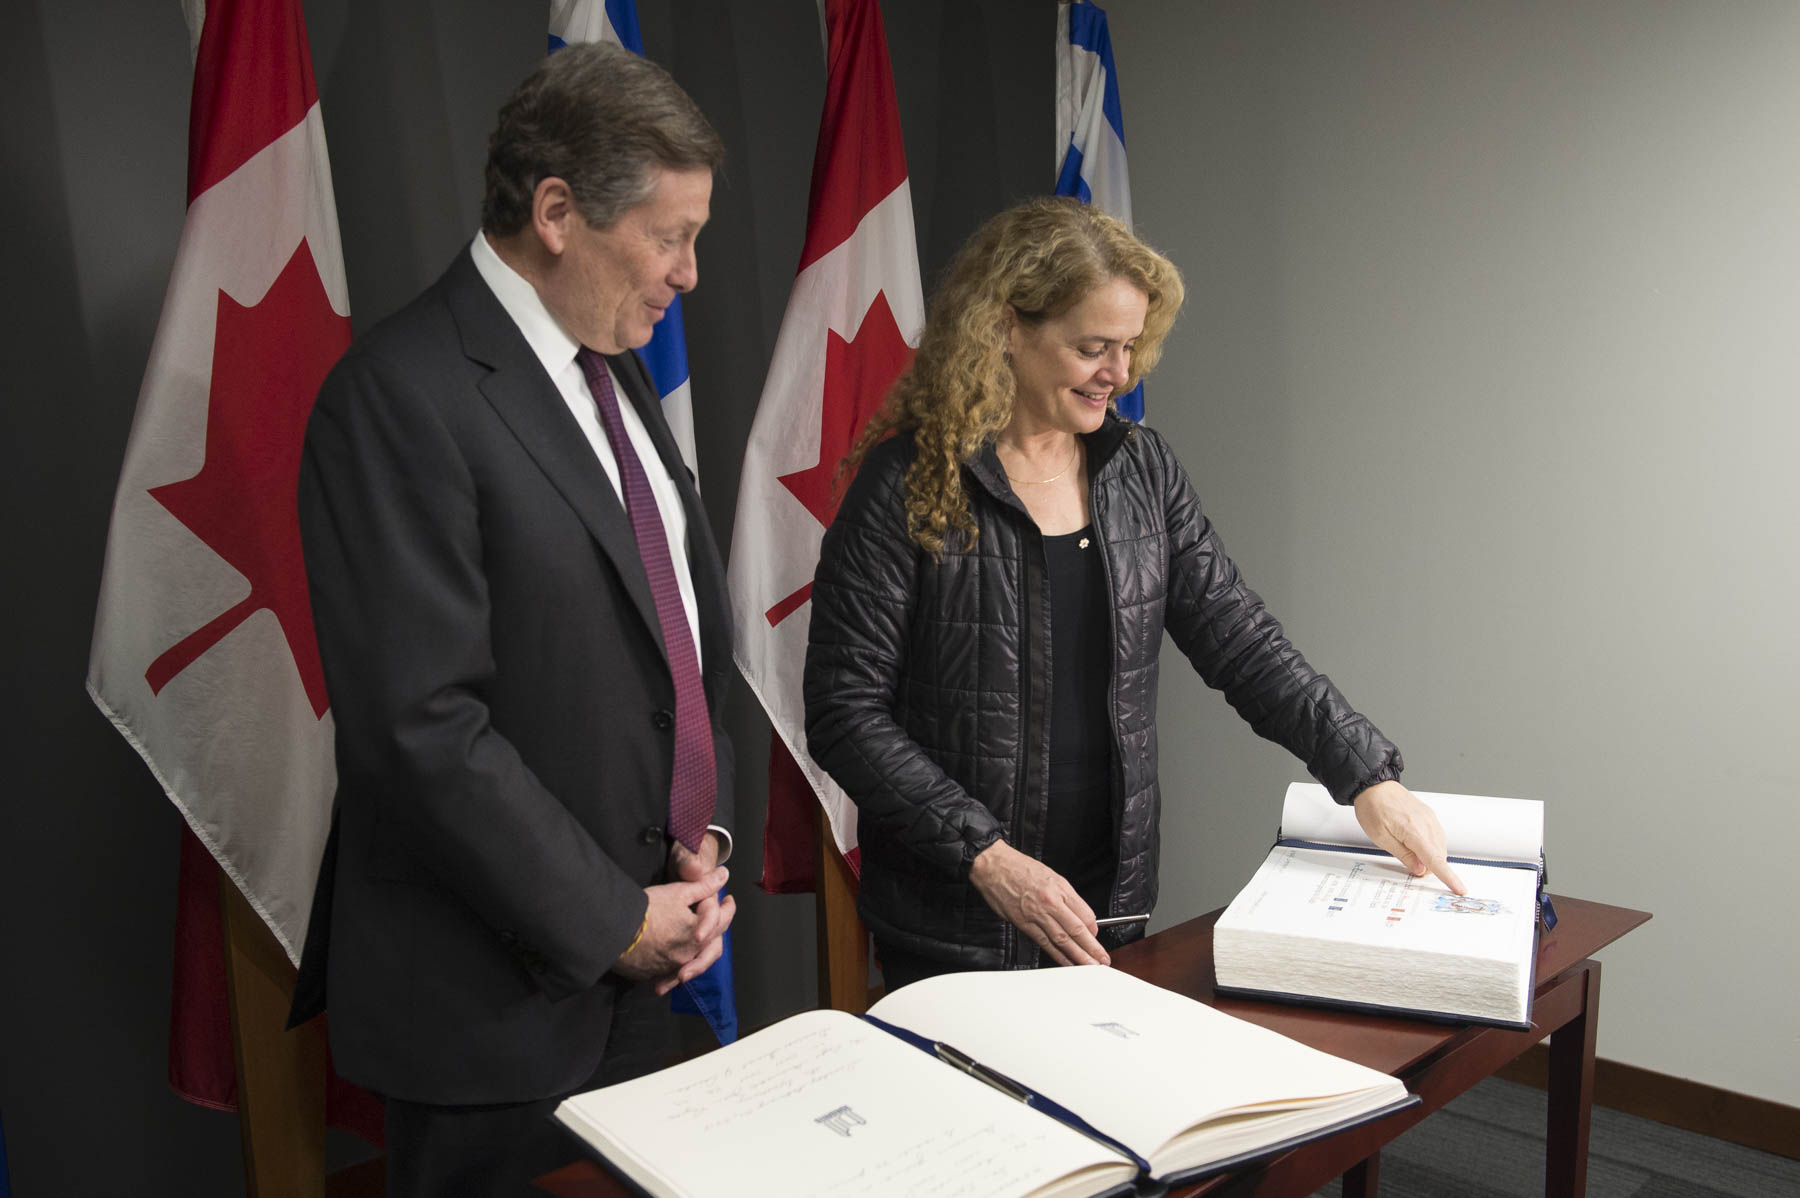 Later in the morning, Her Excellency met with His Worship John Tory, Mayor of Toronto, and signed the City's guest book.